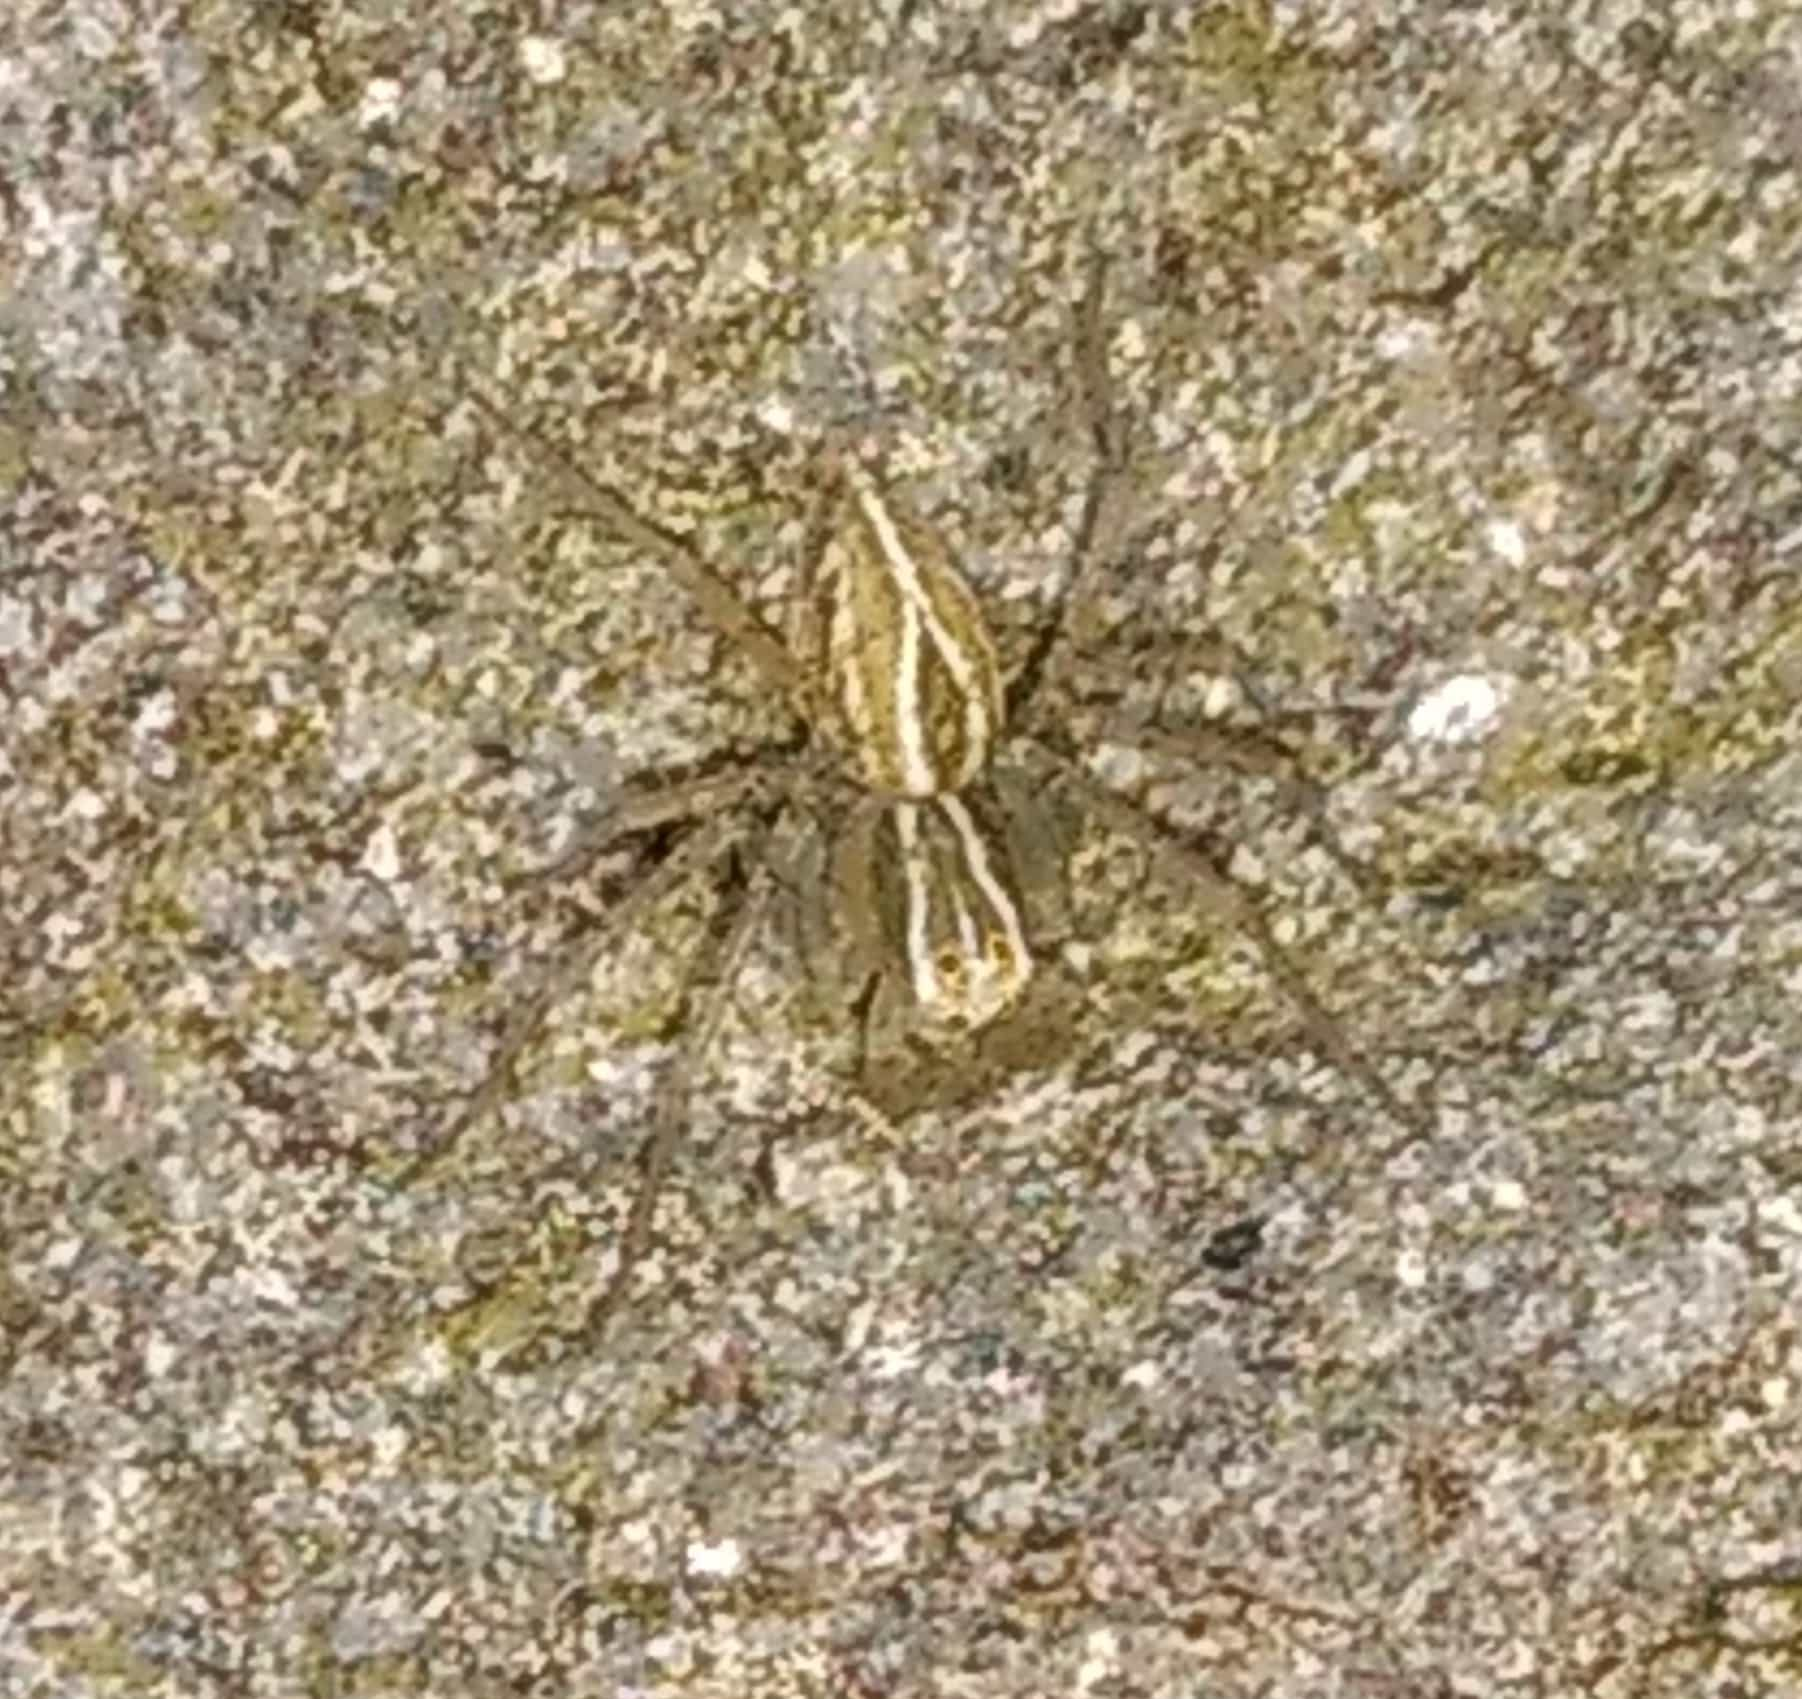 Picture of Oxyopes salticus (Striped Lynx Spider) - Dorsal